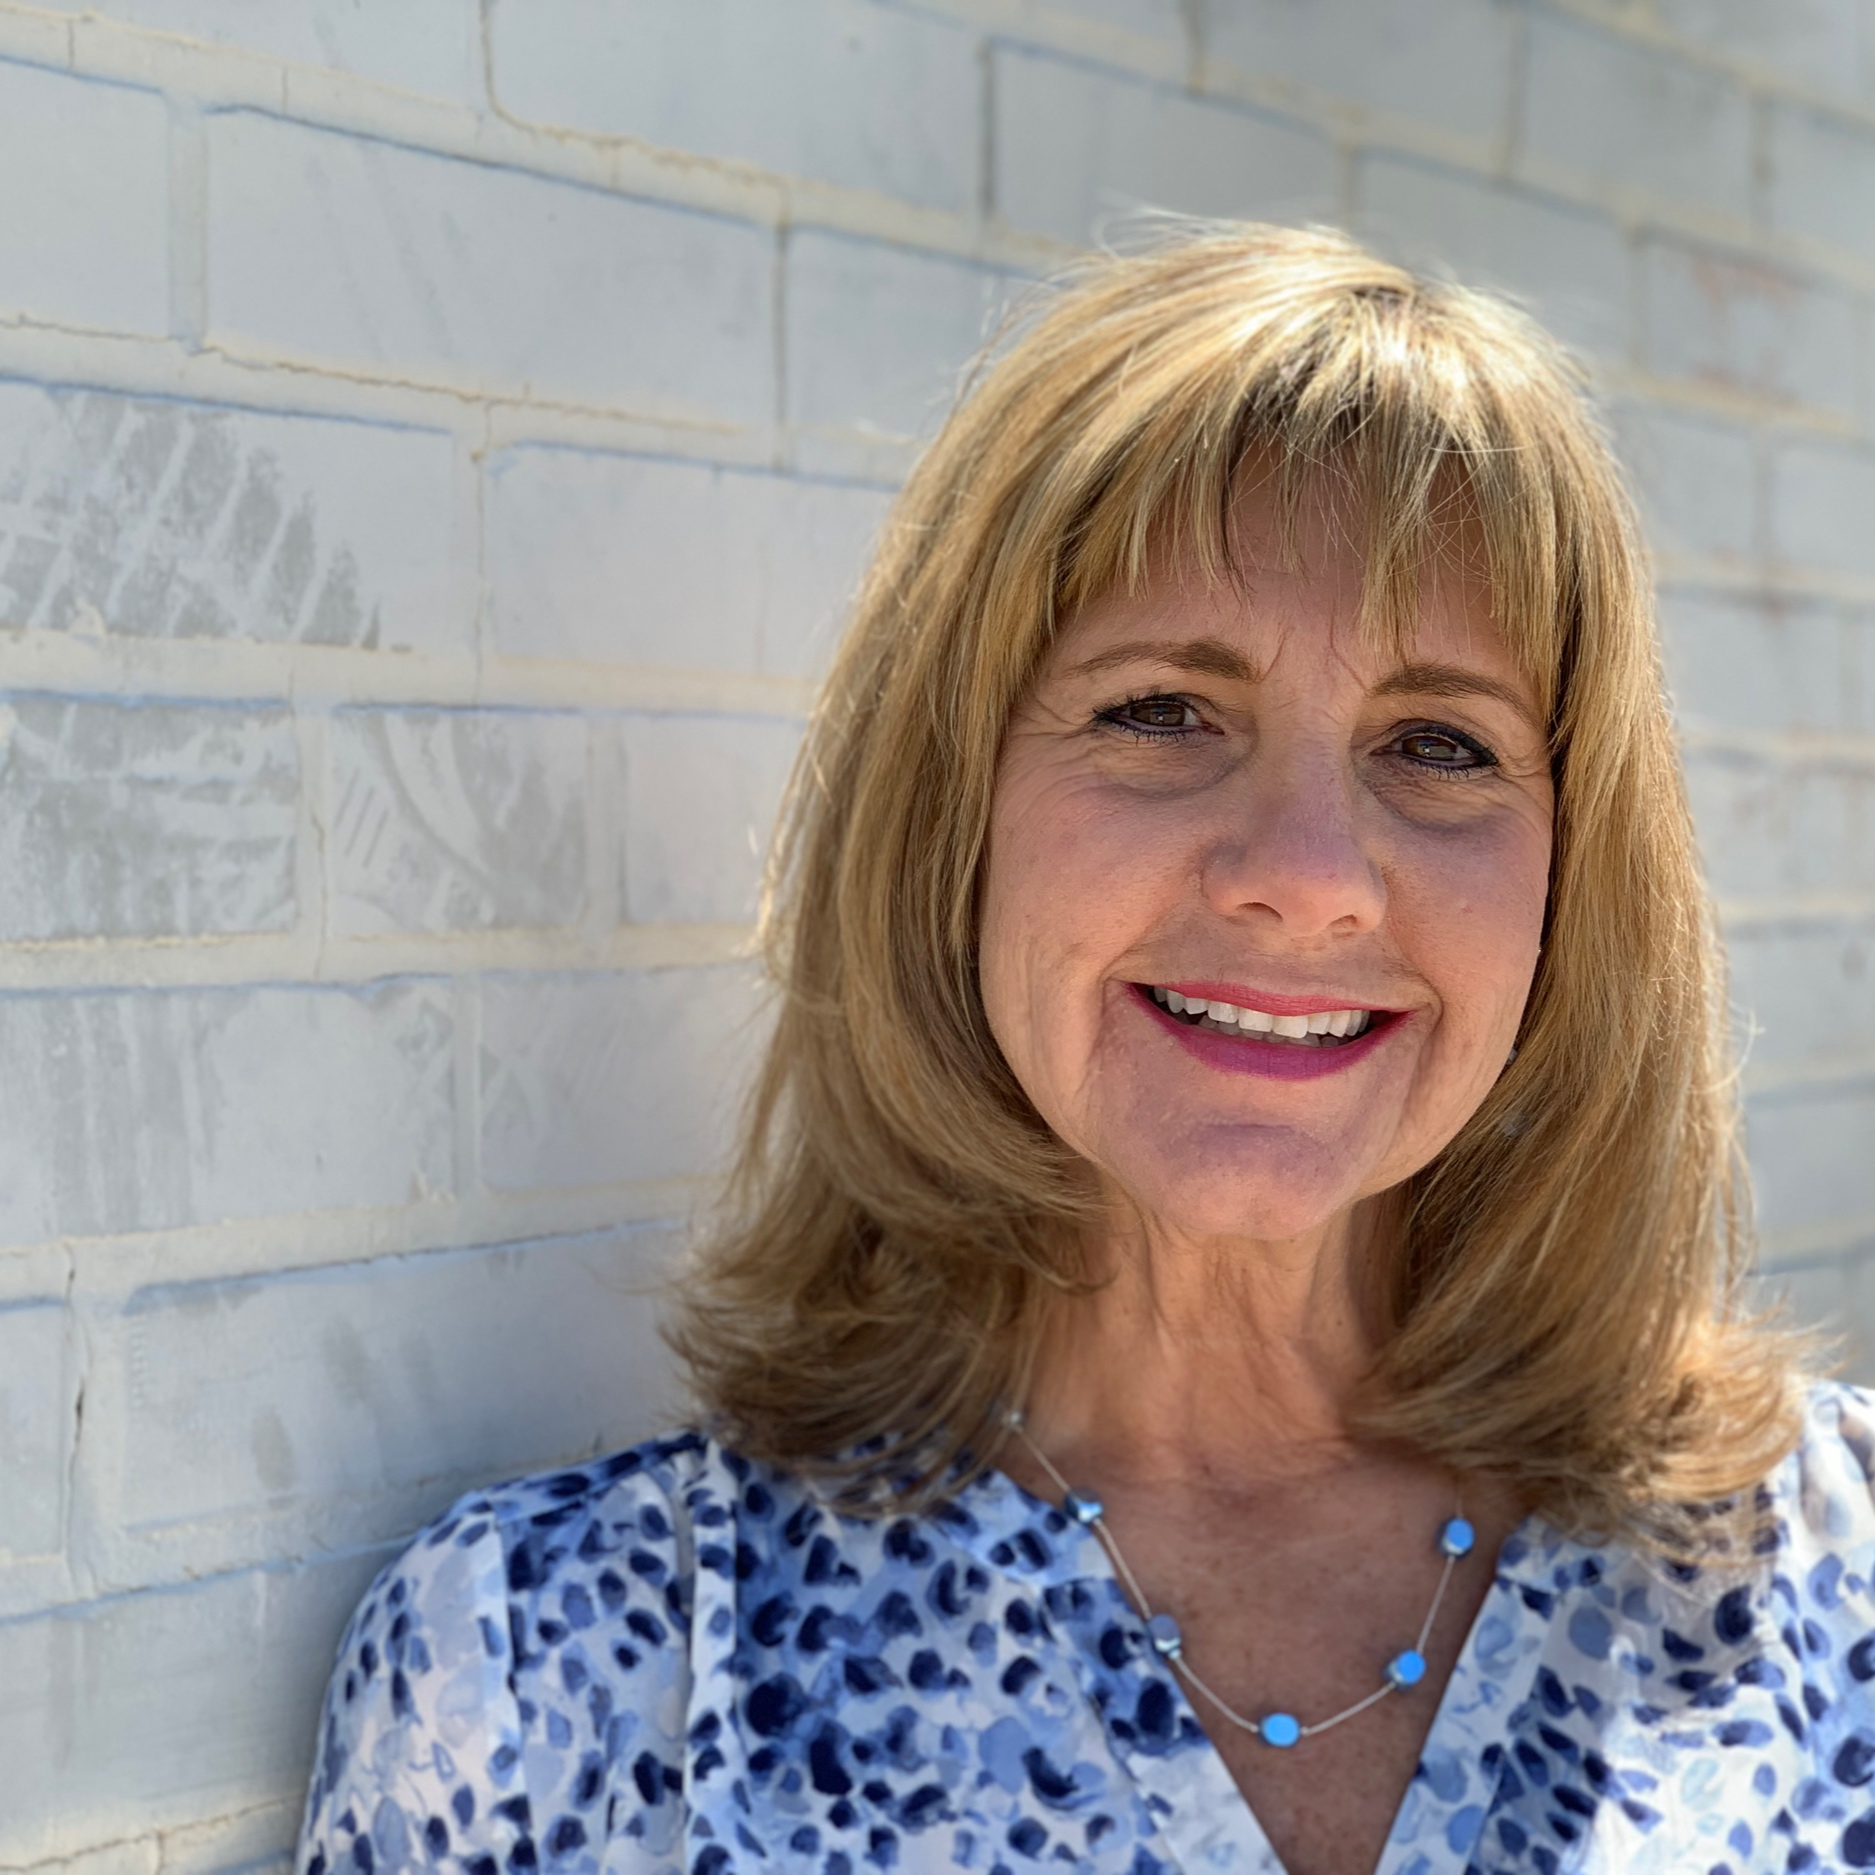 Kimberli Bullard, Office Assistant     kimberli@westmarketchurch.org    Kimberli Bullard joins the WMC staff as part-time Office Assistant. Prior to this position, Kimberli's full time career focused primarily on marketing and special projects management. As a result, Kimberli has a wide range of professional and interpersonal skills that will be beneficial in her role at WMC. Kimberli and her family (husband Brian and daughter's Kayleigh, age 25, and Karleigh, age 22) have been members of WMC for 10 years and attend the 9am Modern Service, where Kimberli is a 10 year vocalist in the Praise Band. For fun, Kimberli enjoys any outdoor activities with her family that include the beach, white water rafting, roller coasters and trips every other year to Disney World. Thanks to both daughters being recent UNC grads, Kimberli and family are big Tar Heel fans and enjoy attending baseball, football and basketball games